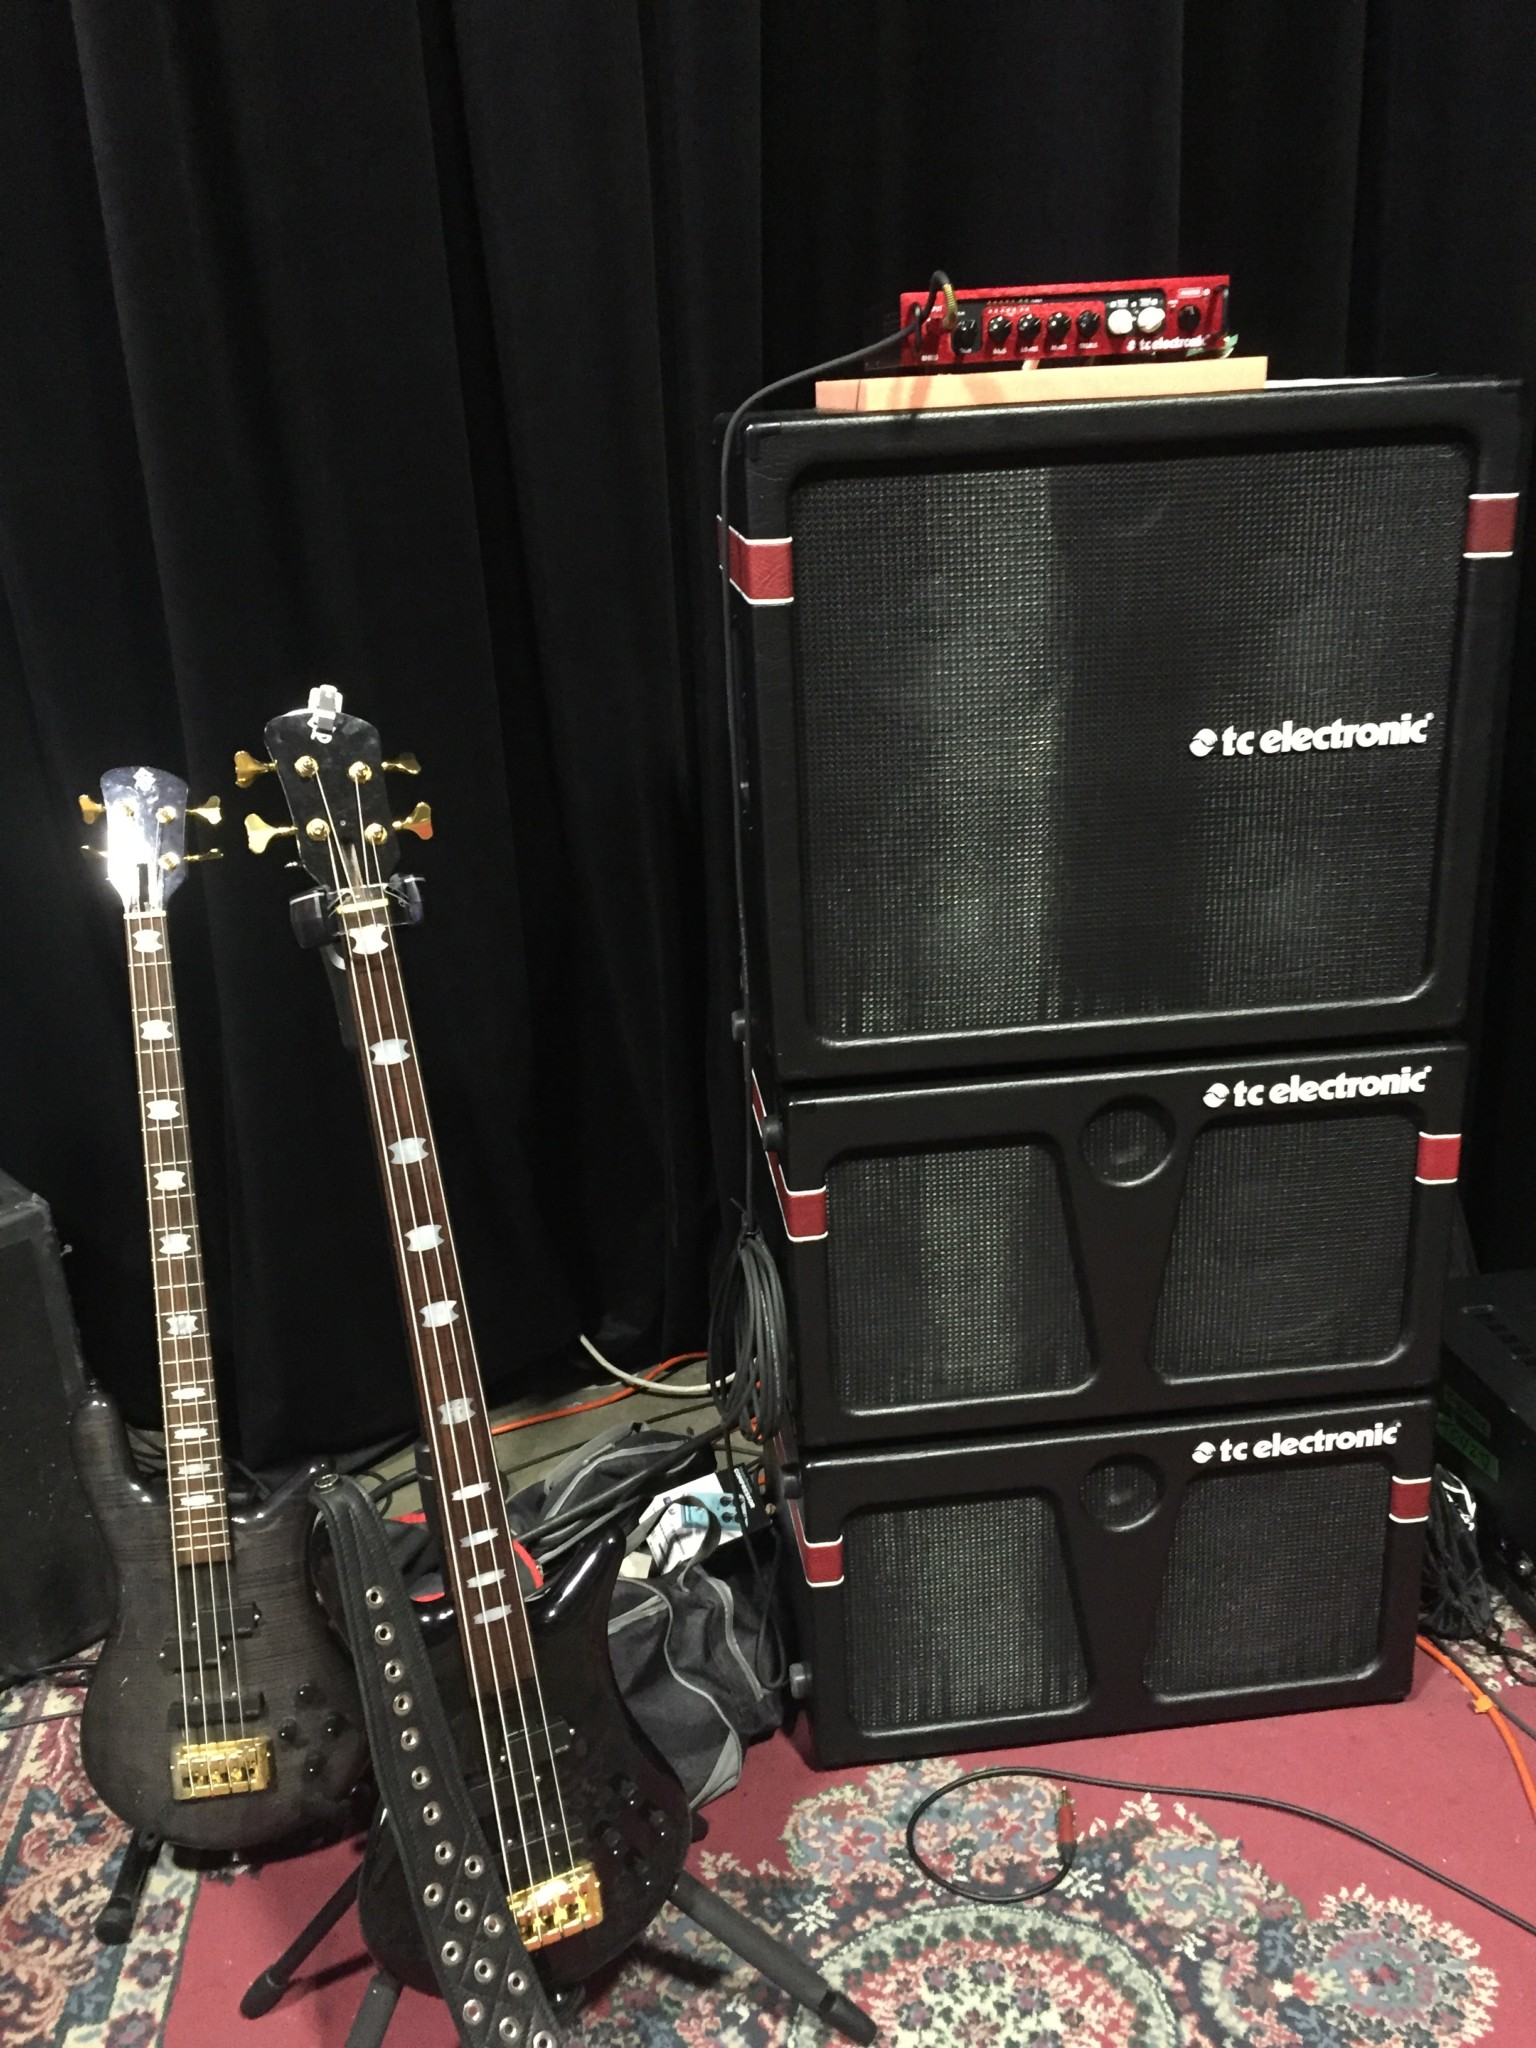 rudy sarzo bass player 2016 gear setup